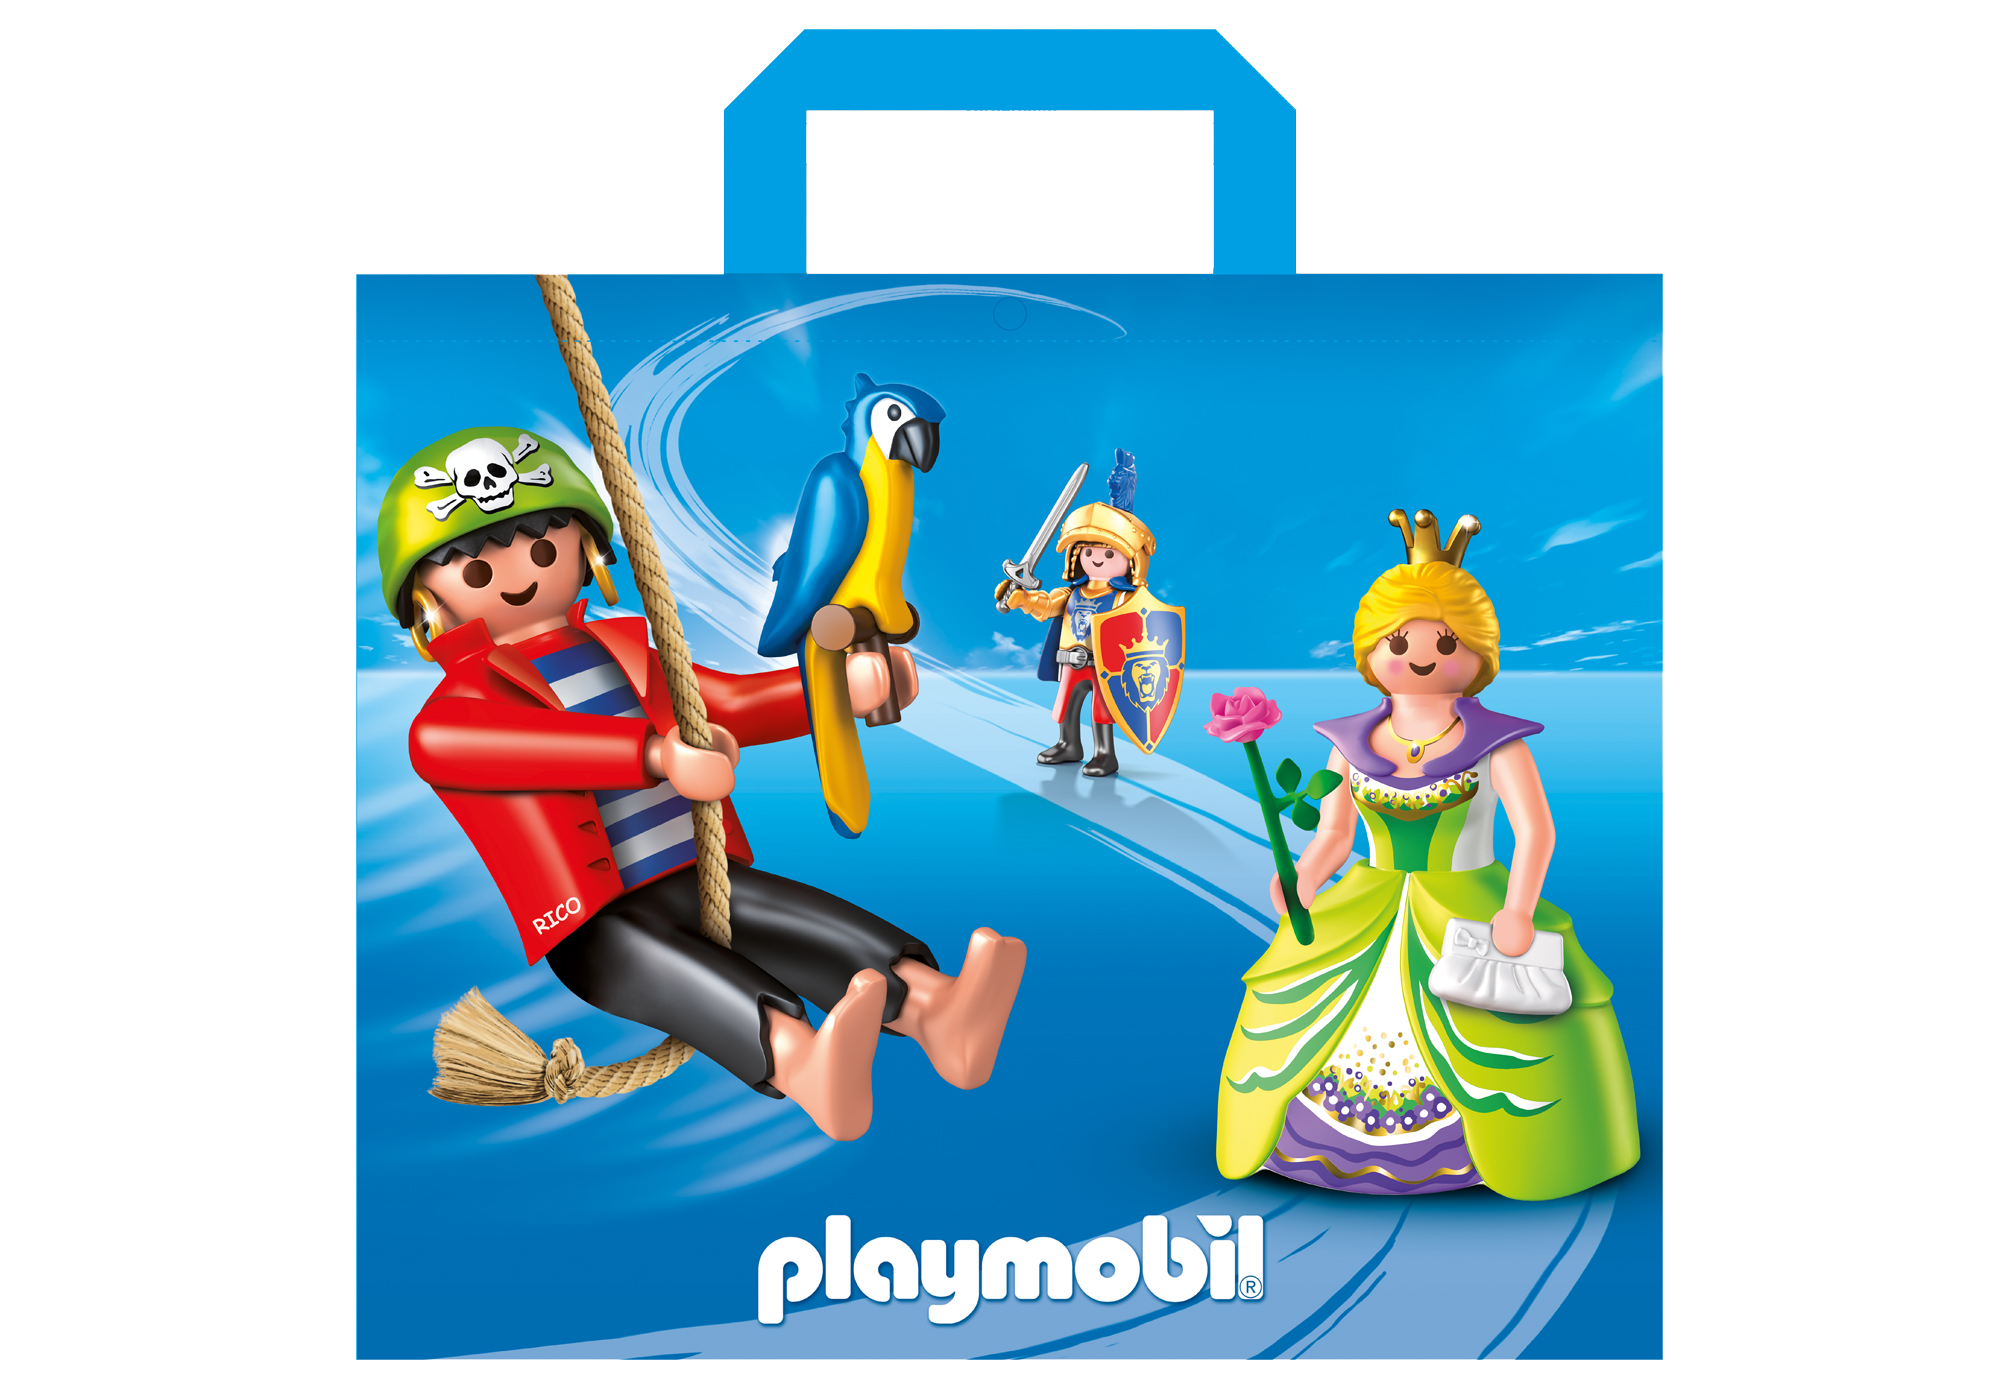 http://media.playmobil.com/i/playmobil/86483_product_detail/Sac PLAYMOBIL XXL